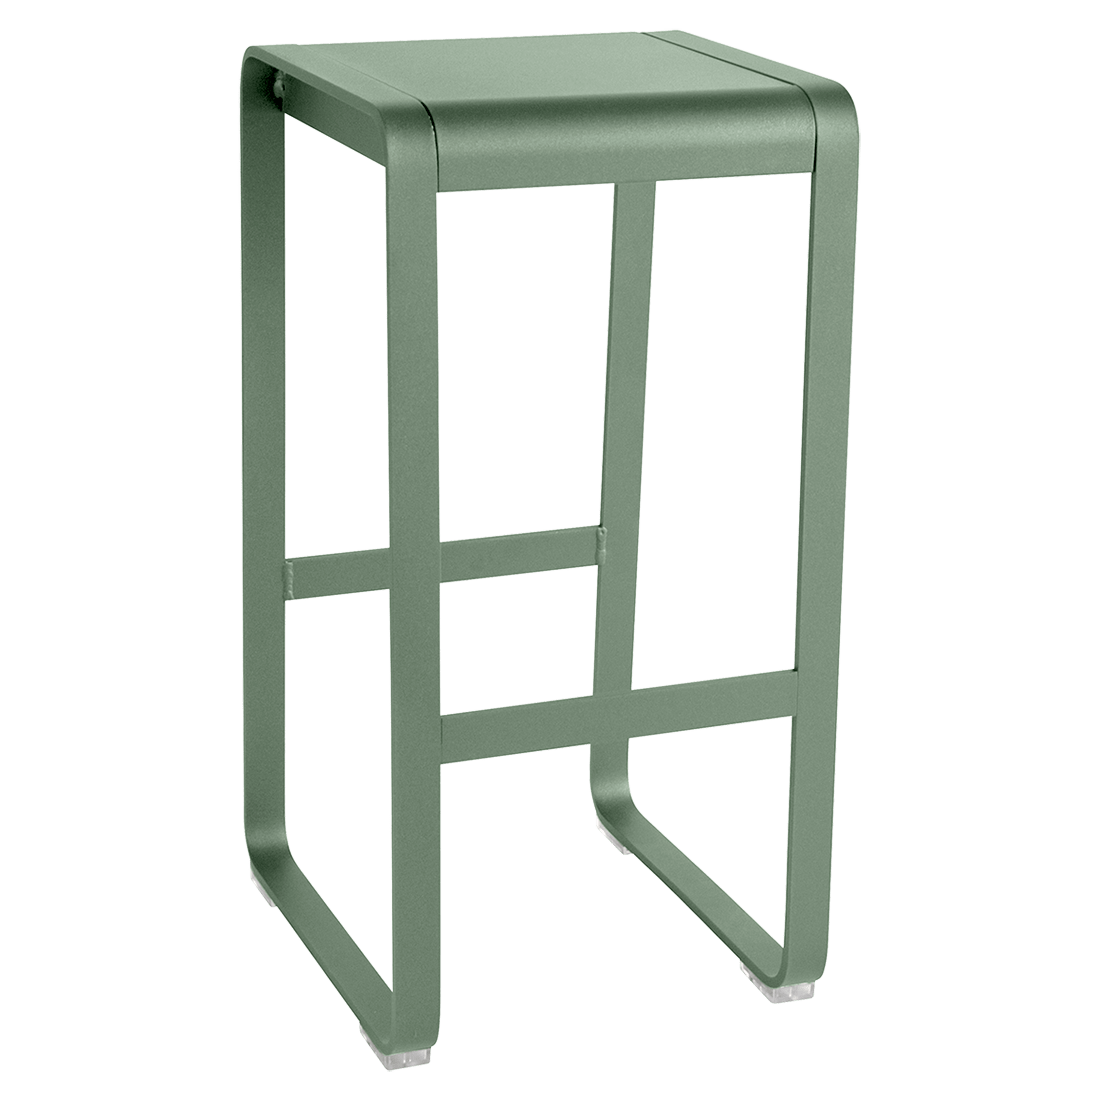 Accessoires Pour Tabourets De Bar Assise Tabouret De Bar Bellevie Tabouret De Bar En Metal Fermob